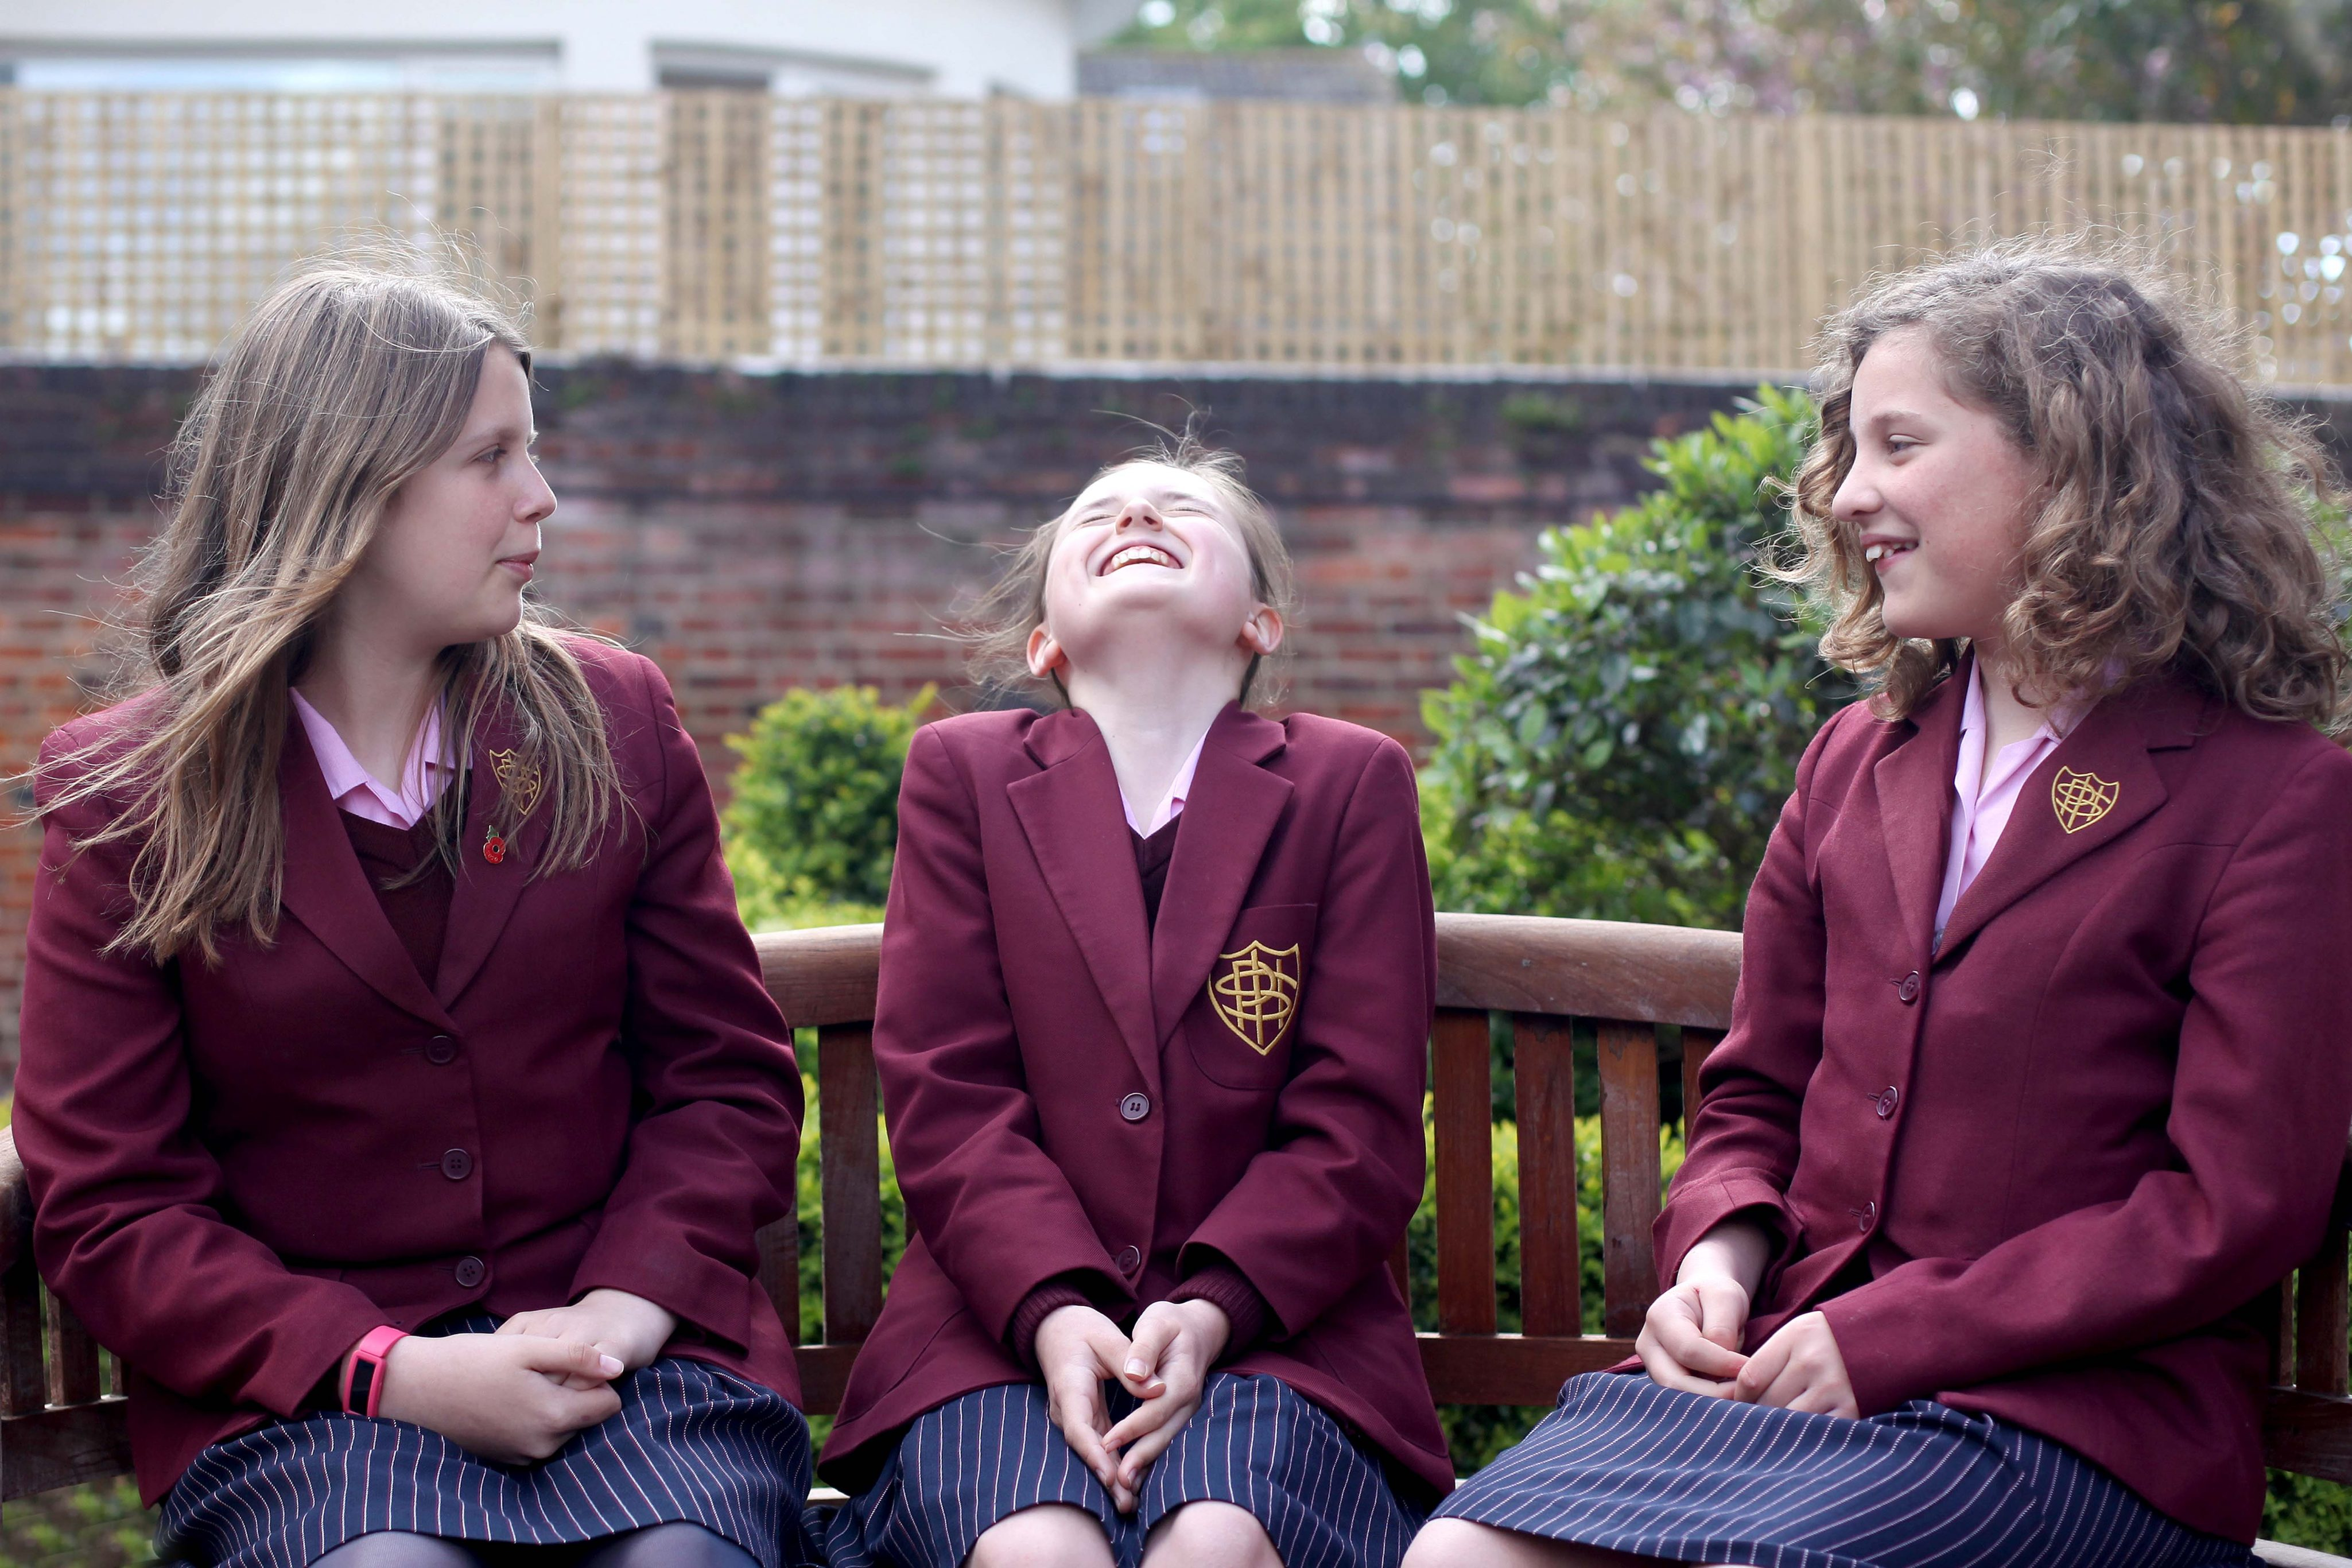 Year 7 girls at Portsmouth High School talking outside